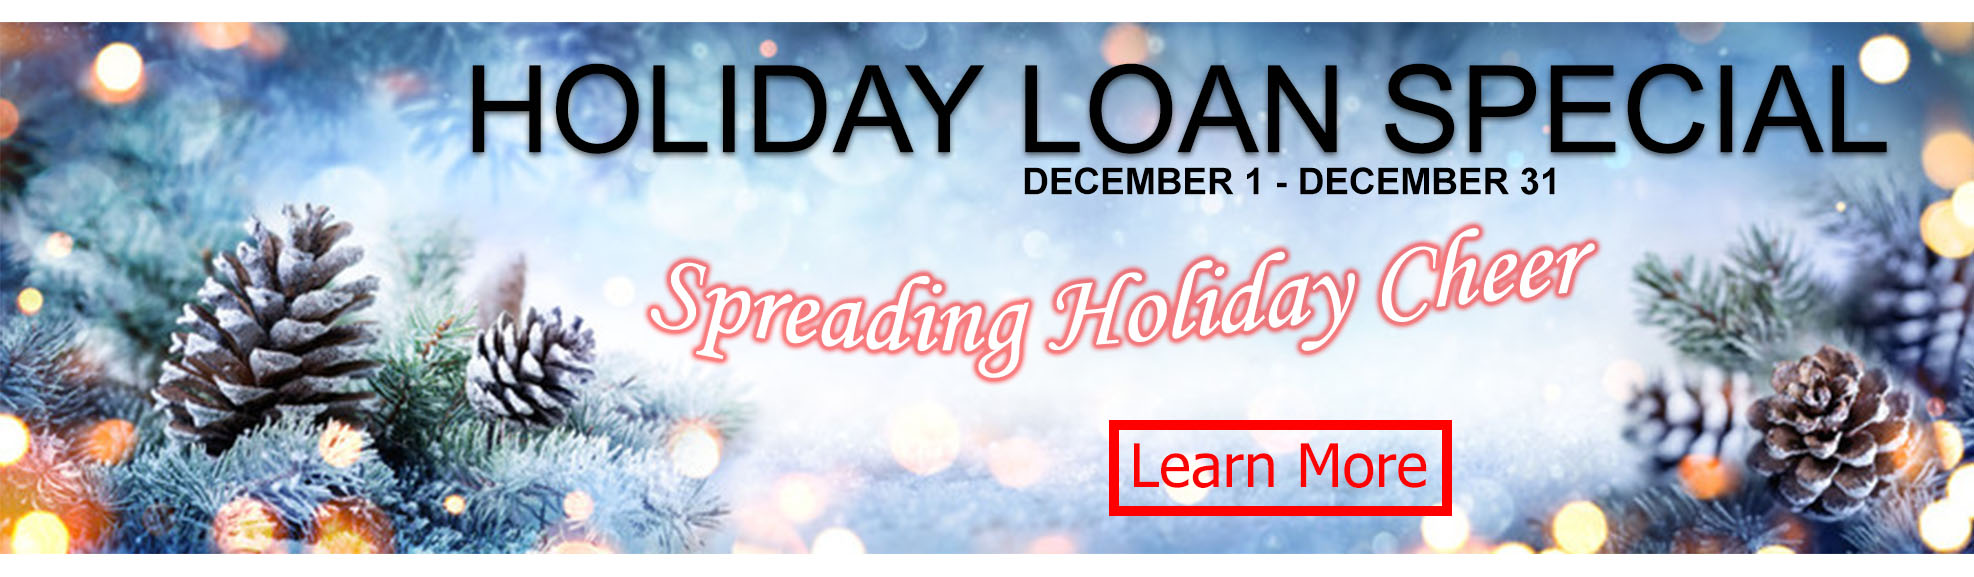 holiday loan special. december 1-31, 2019. Learn More.